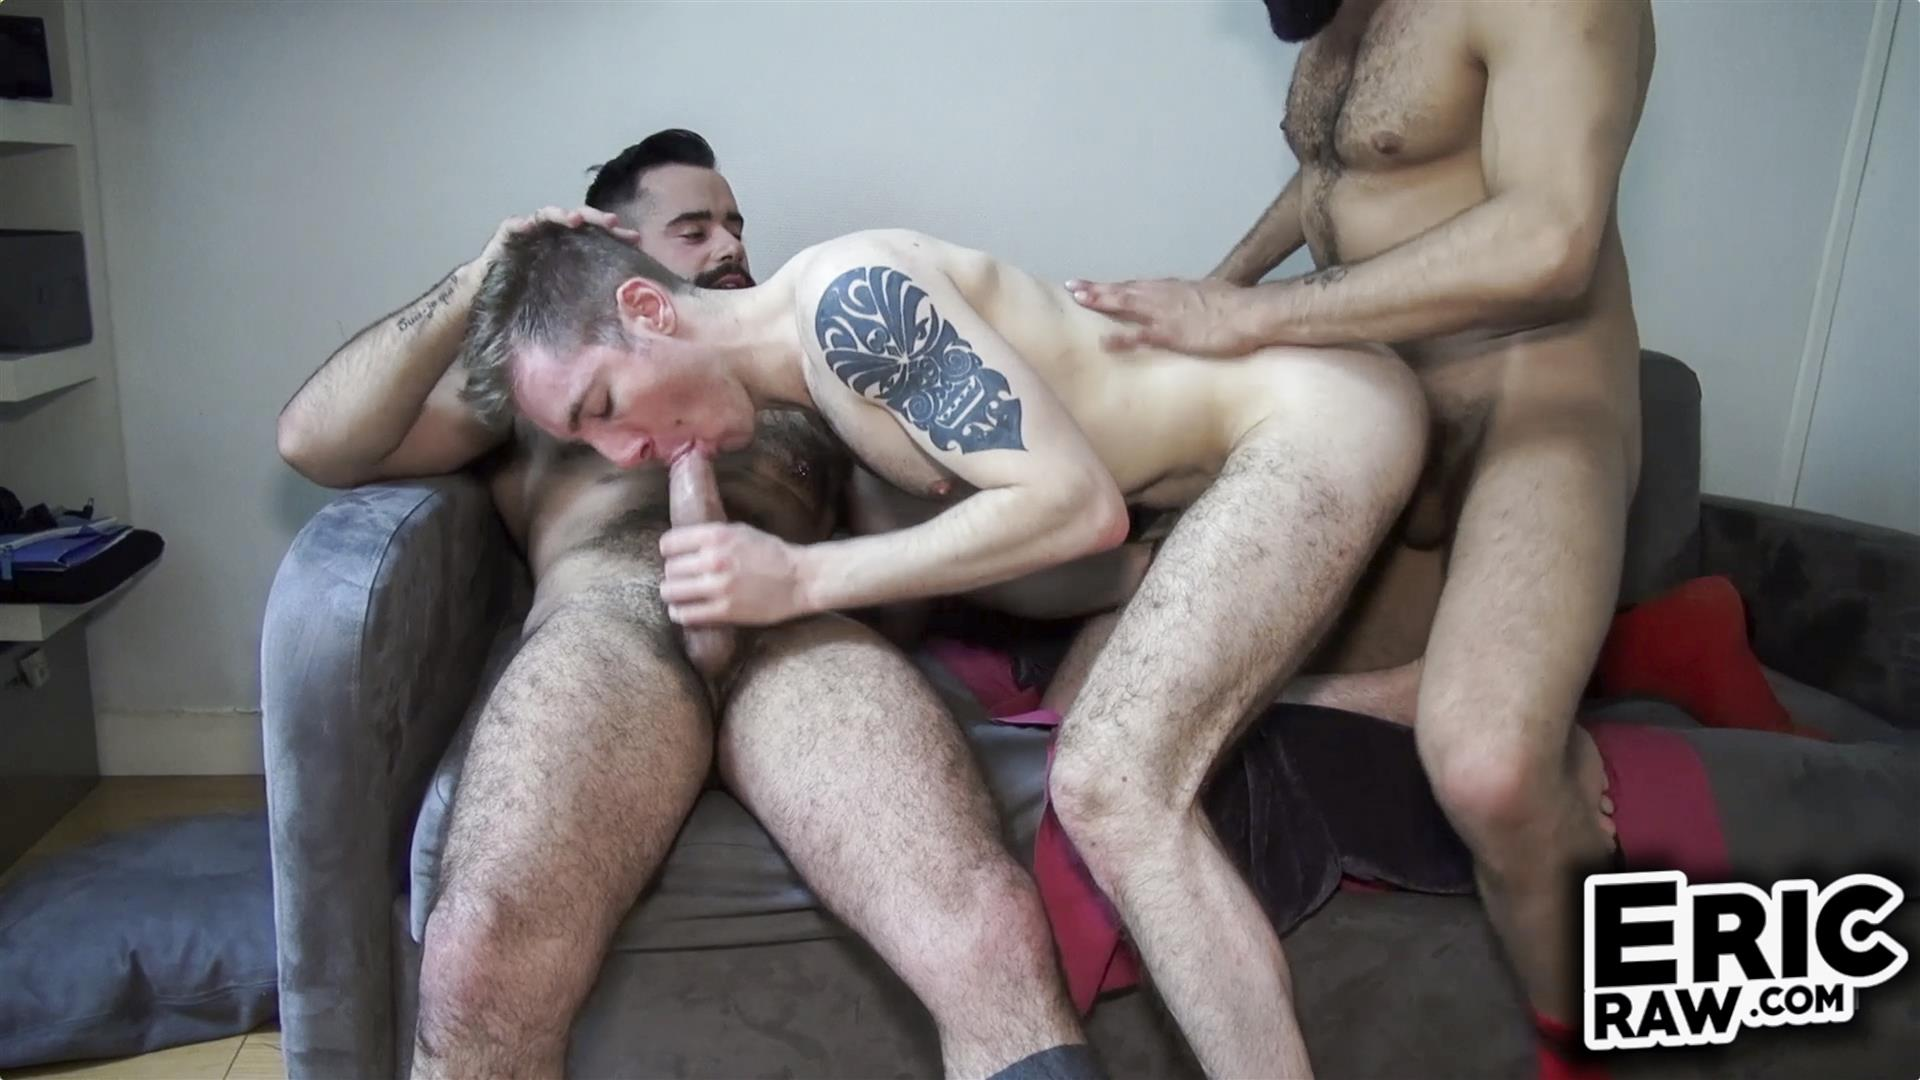 Eric-Raw-Bareback-Threesome-Hairy-Muscle-Hunks-Amateur-01 Bareback Fuck Date With Three Hairy Muscular Jocks